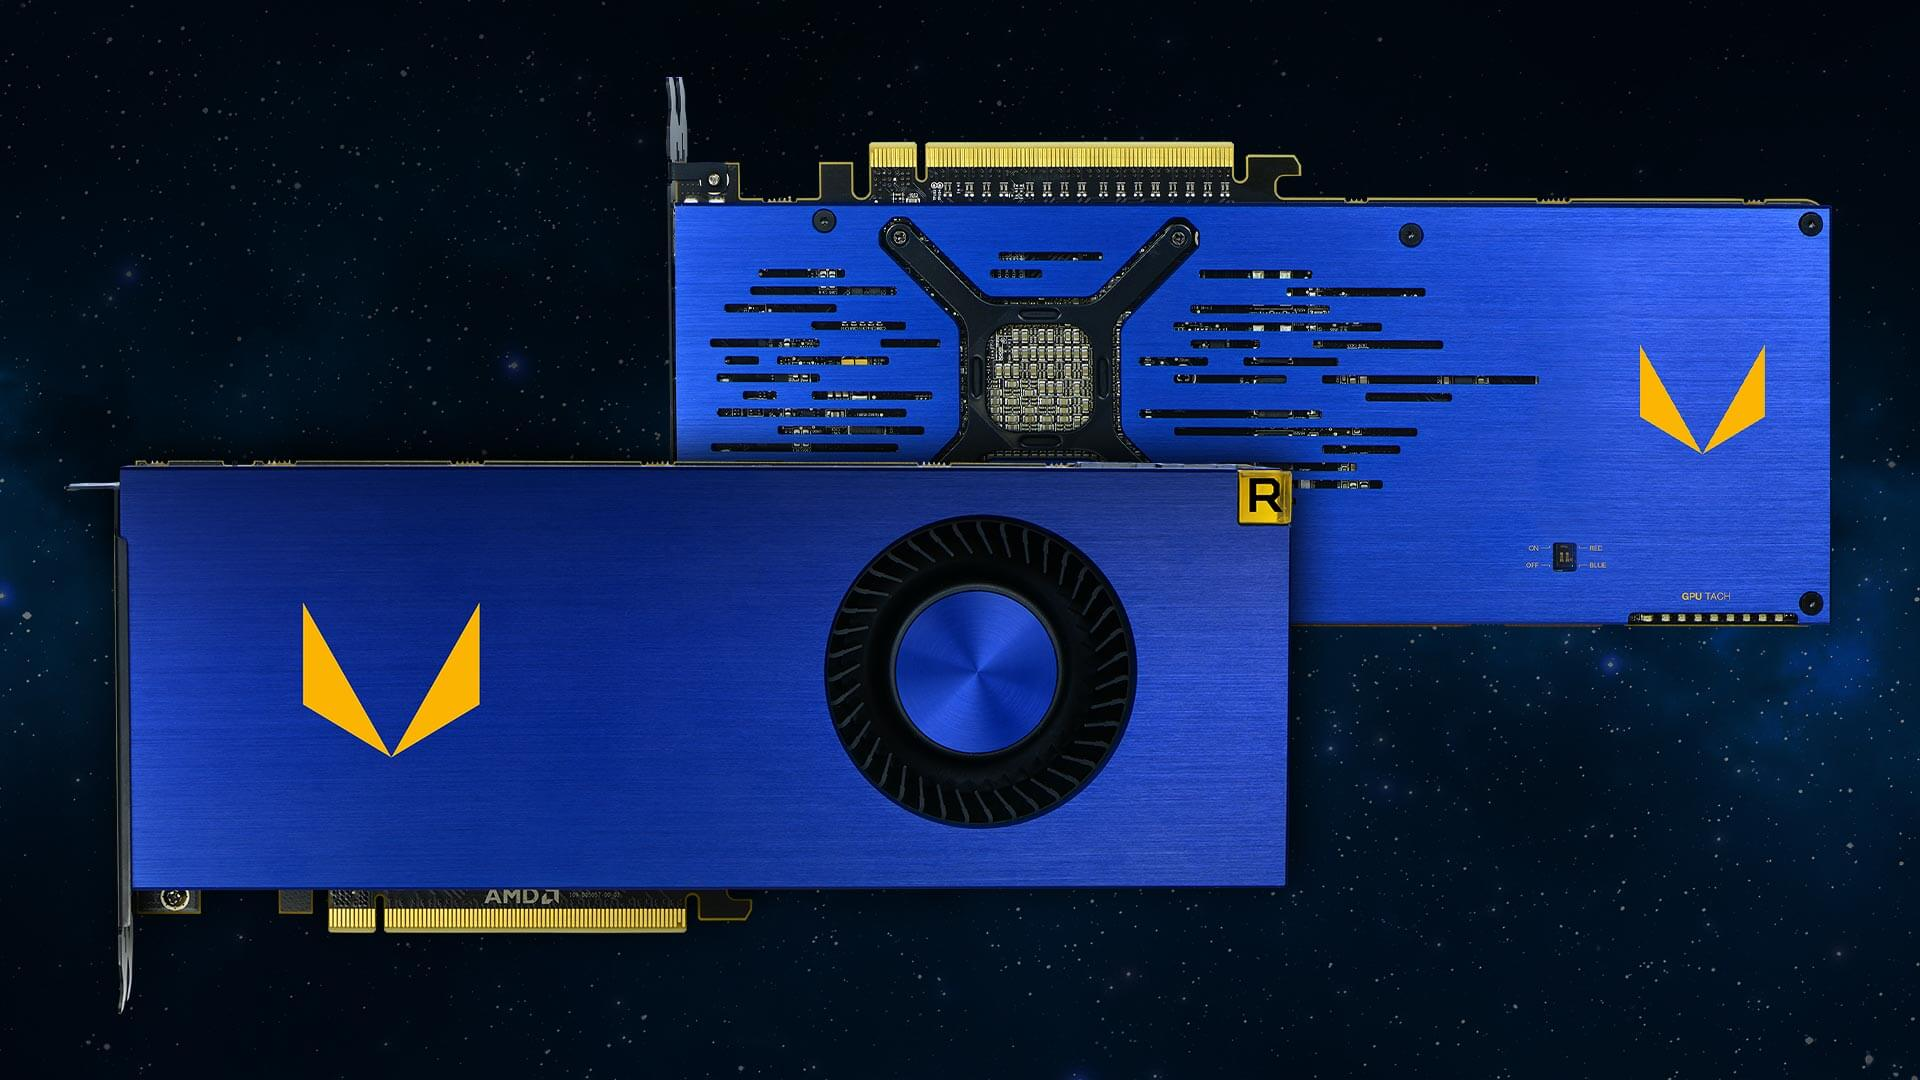 Radeon RX Vega GPUs are next to impossible to buy: Is AMD hitting pause or simply prioritizing Frontier Edition?